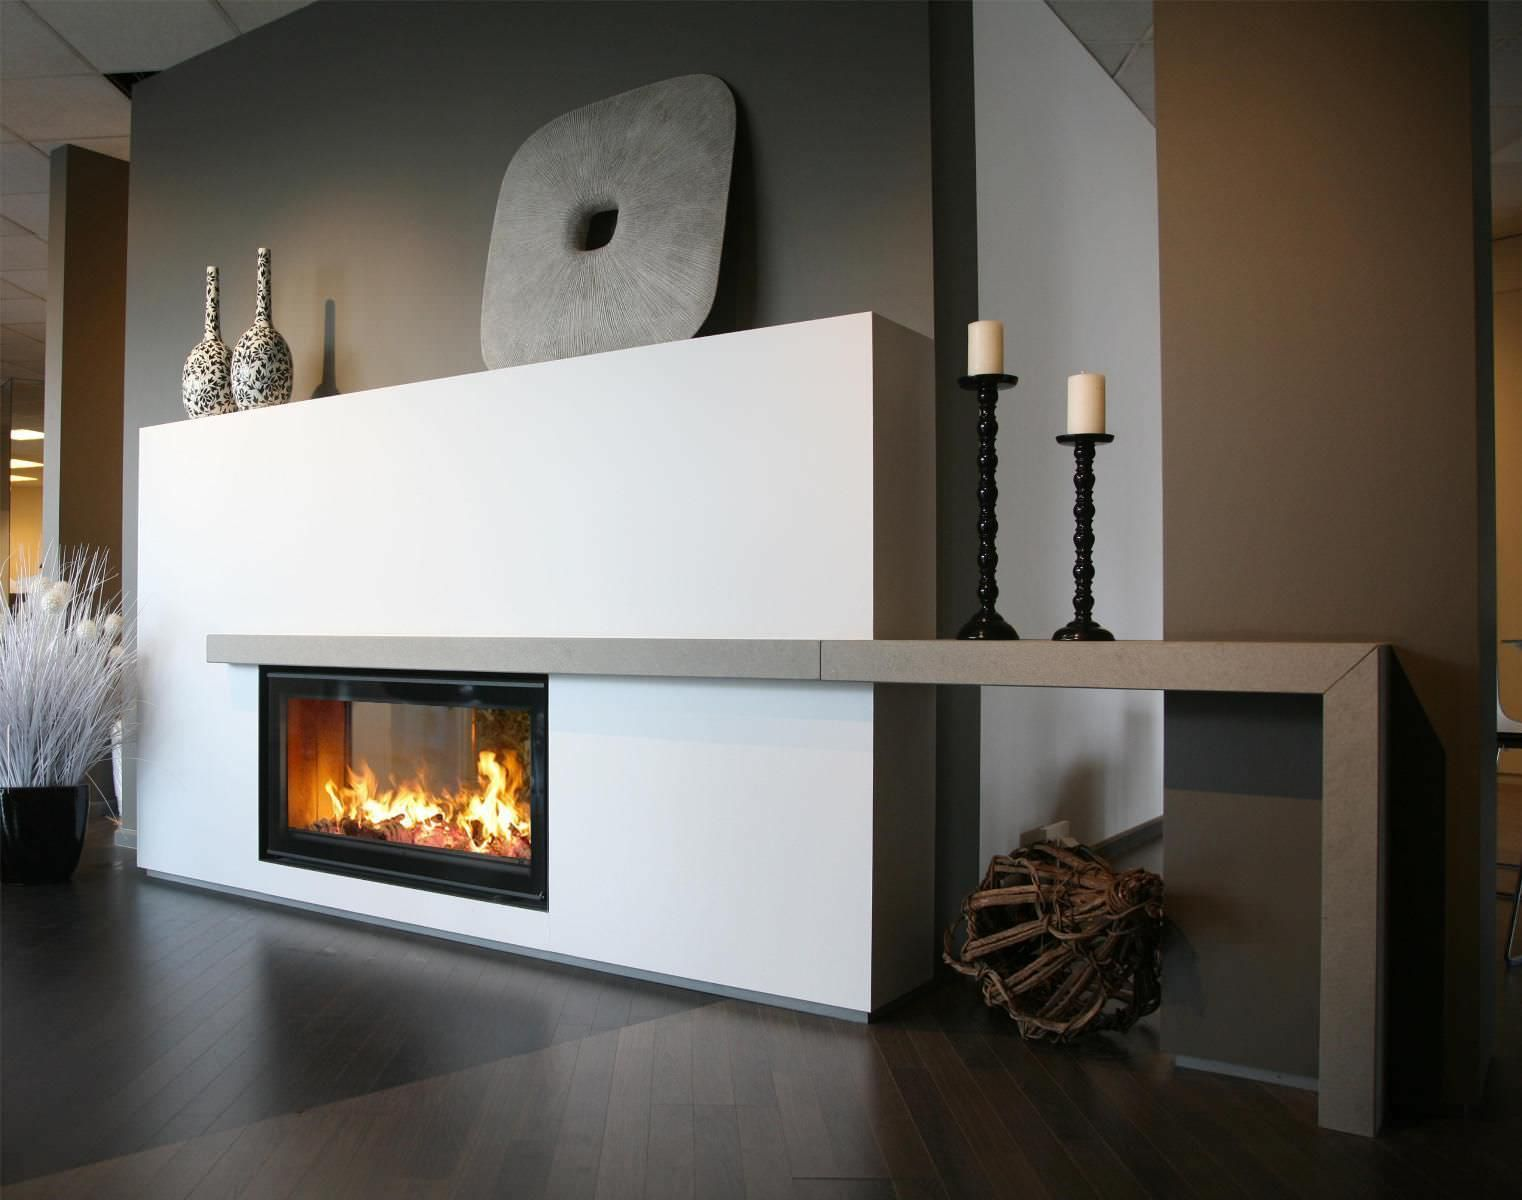 plain white double sided gas fireplace mantel design with brown table shelf plus decorative. Black Bedroom Furniture Sets. Home Design Ideas